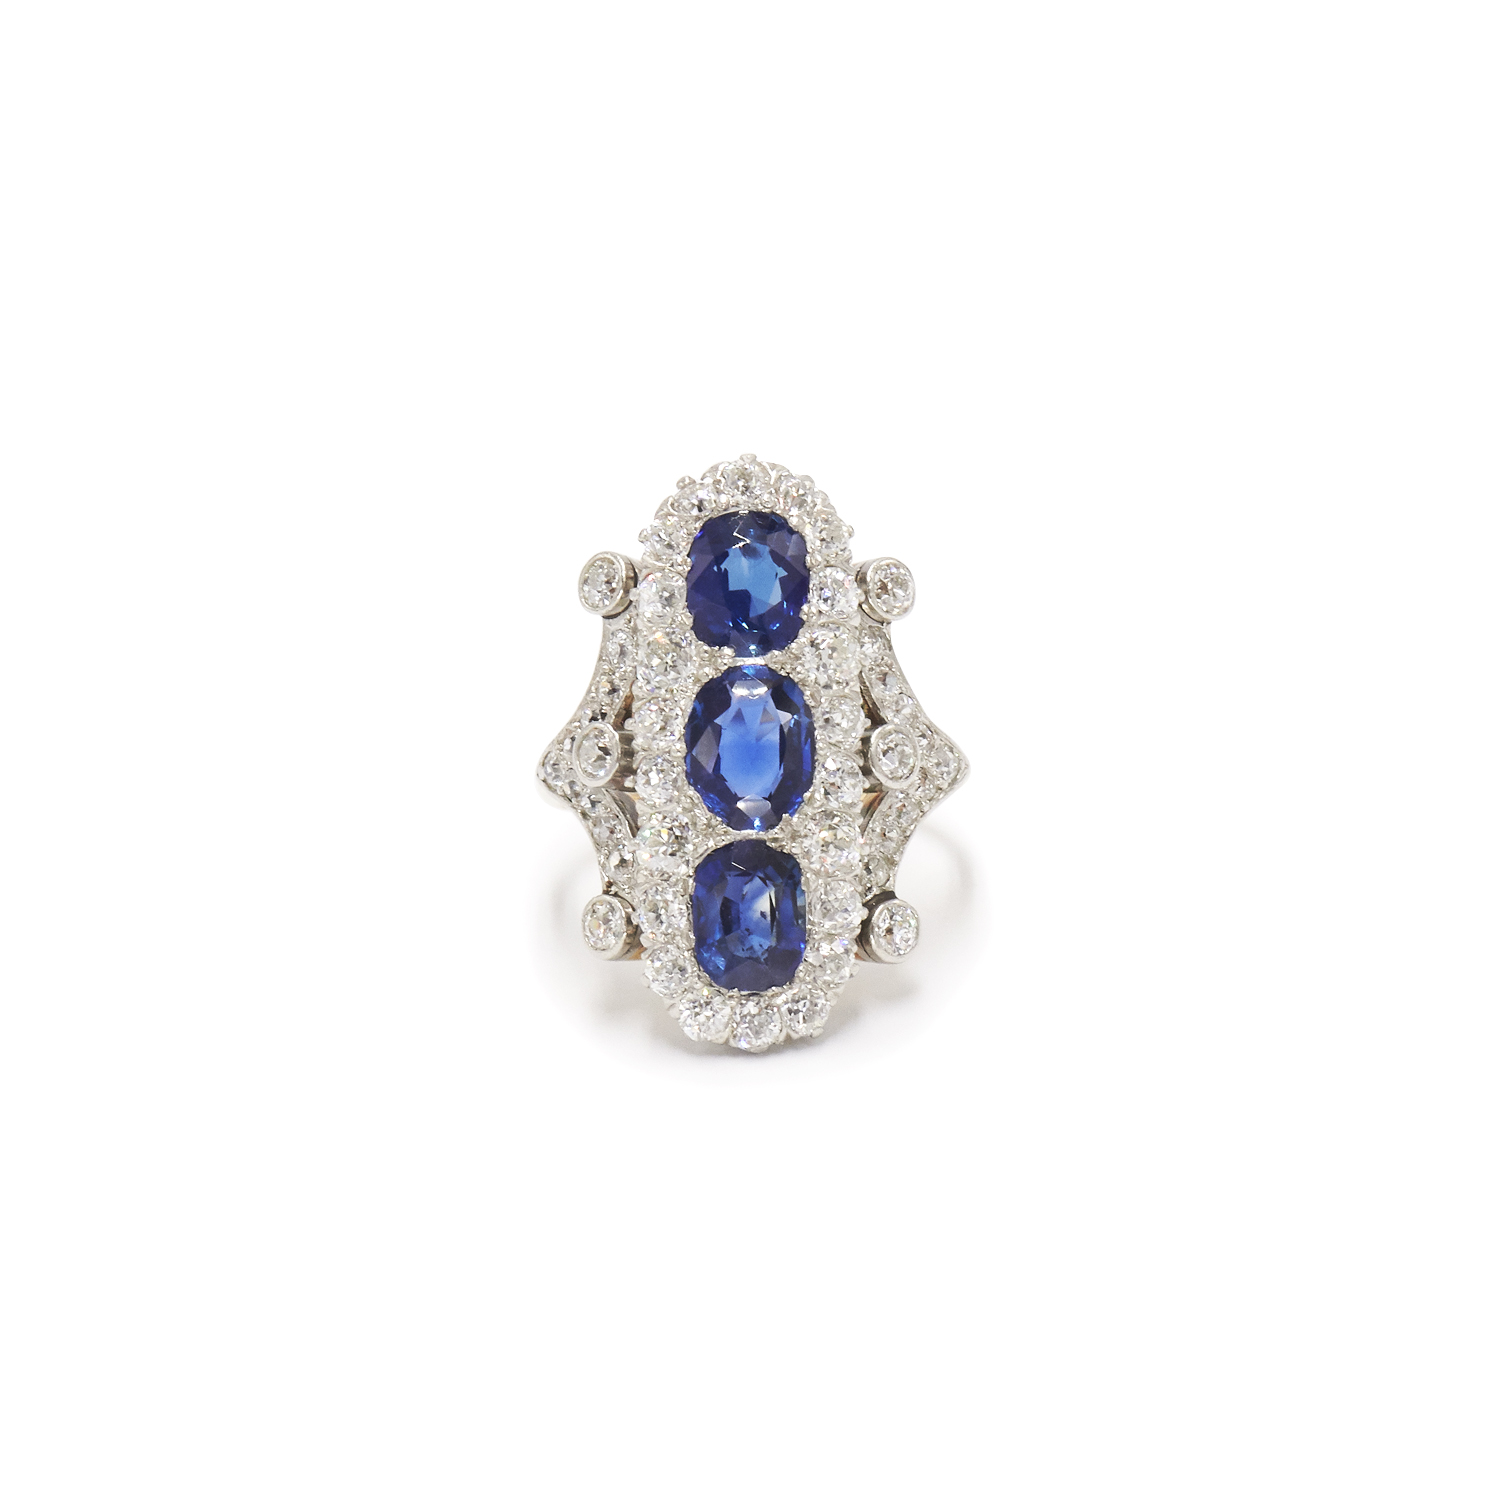 Edwardian Sapphire and Diamond Ring Style R-40064-0-0-0